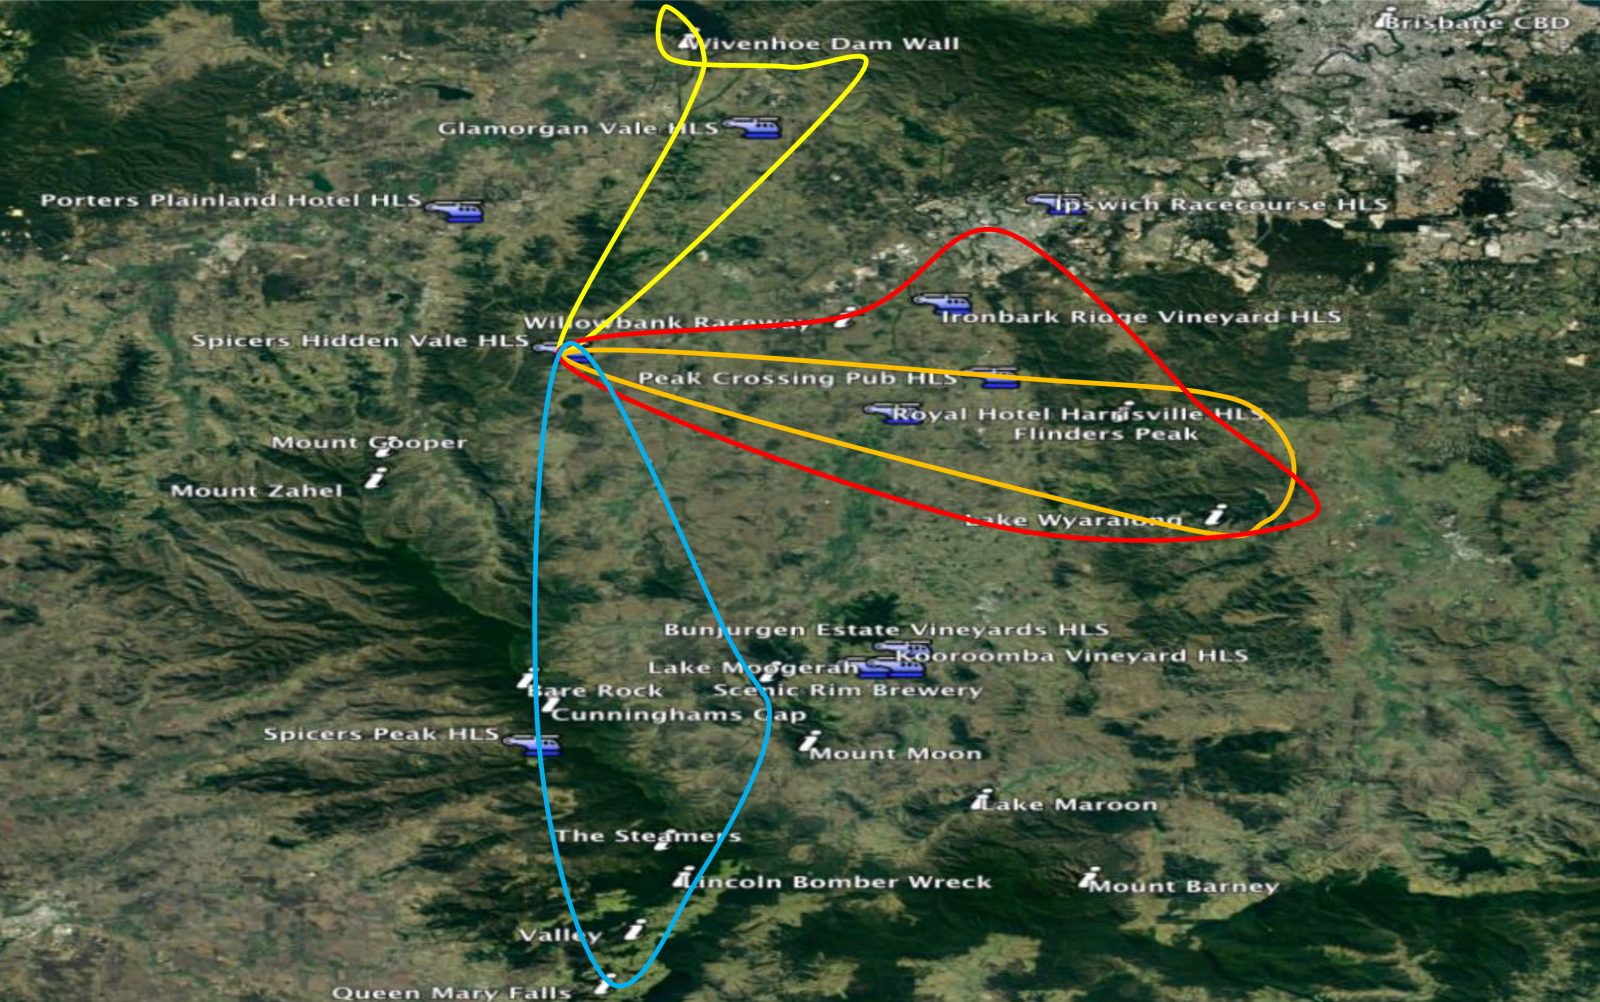 Routes and locations we fly around Extraordinary Experiences at Spicers Hidden Vale